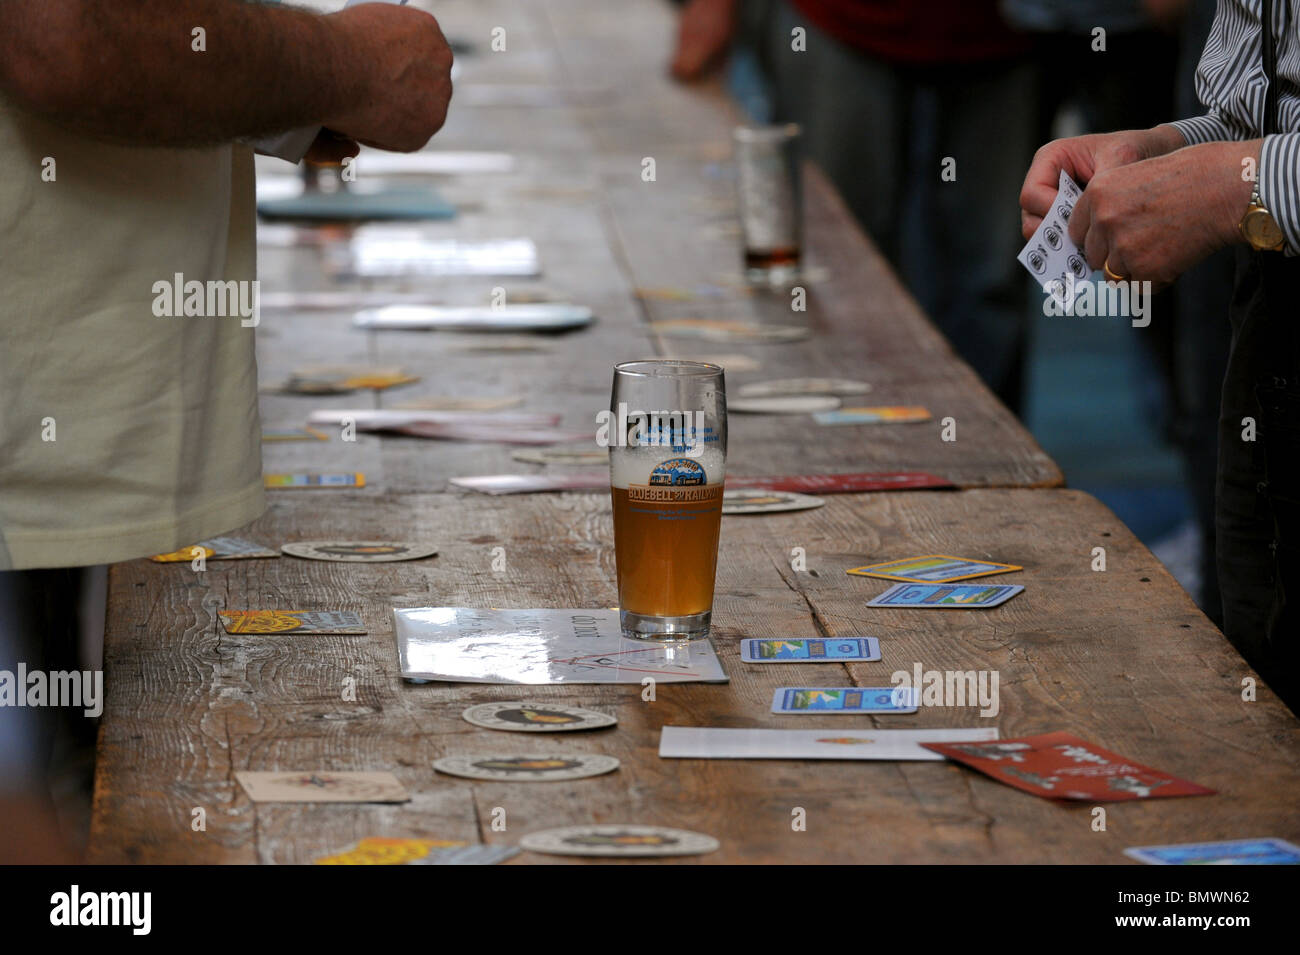 Pint of beer on a table at Southdown Beer and Cider Festival at Lewes UK - Stock Image